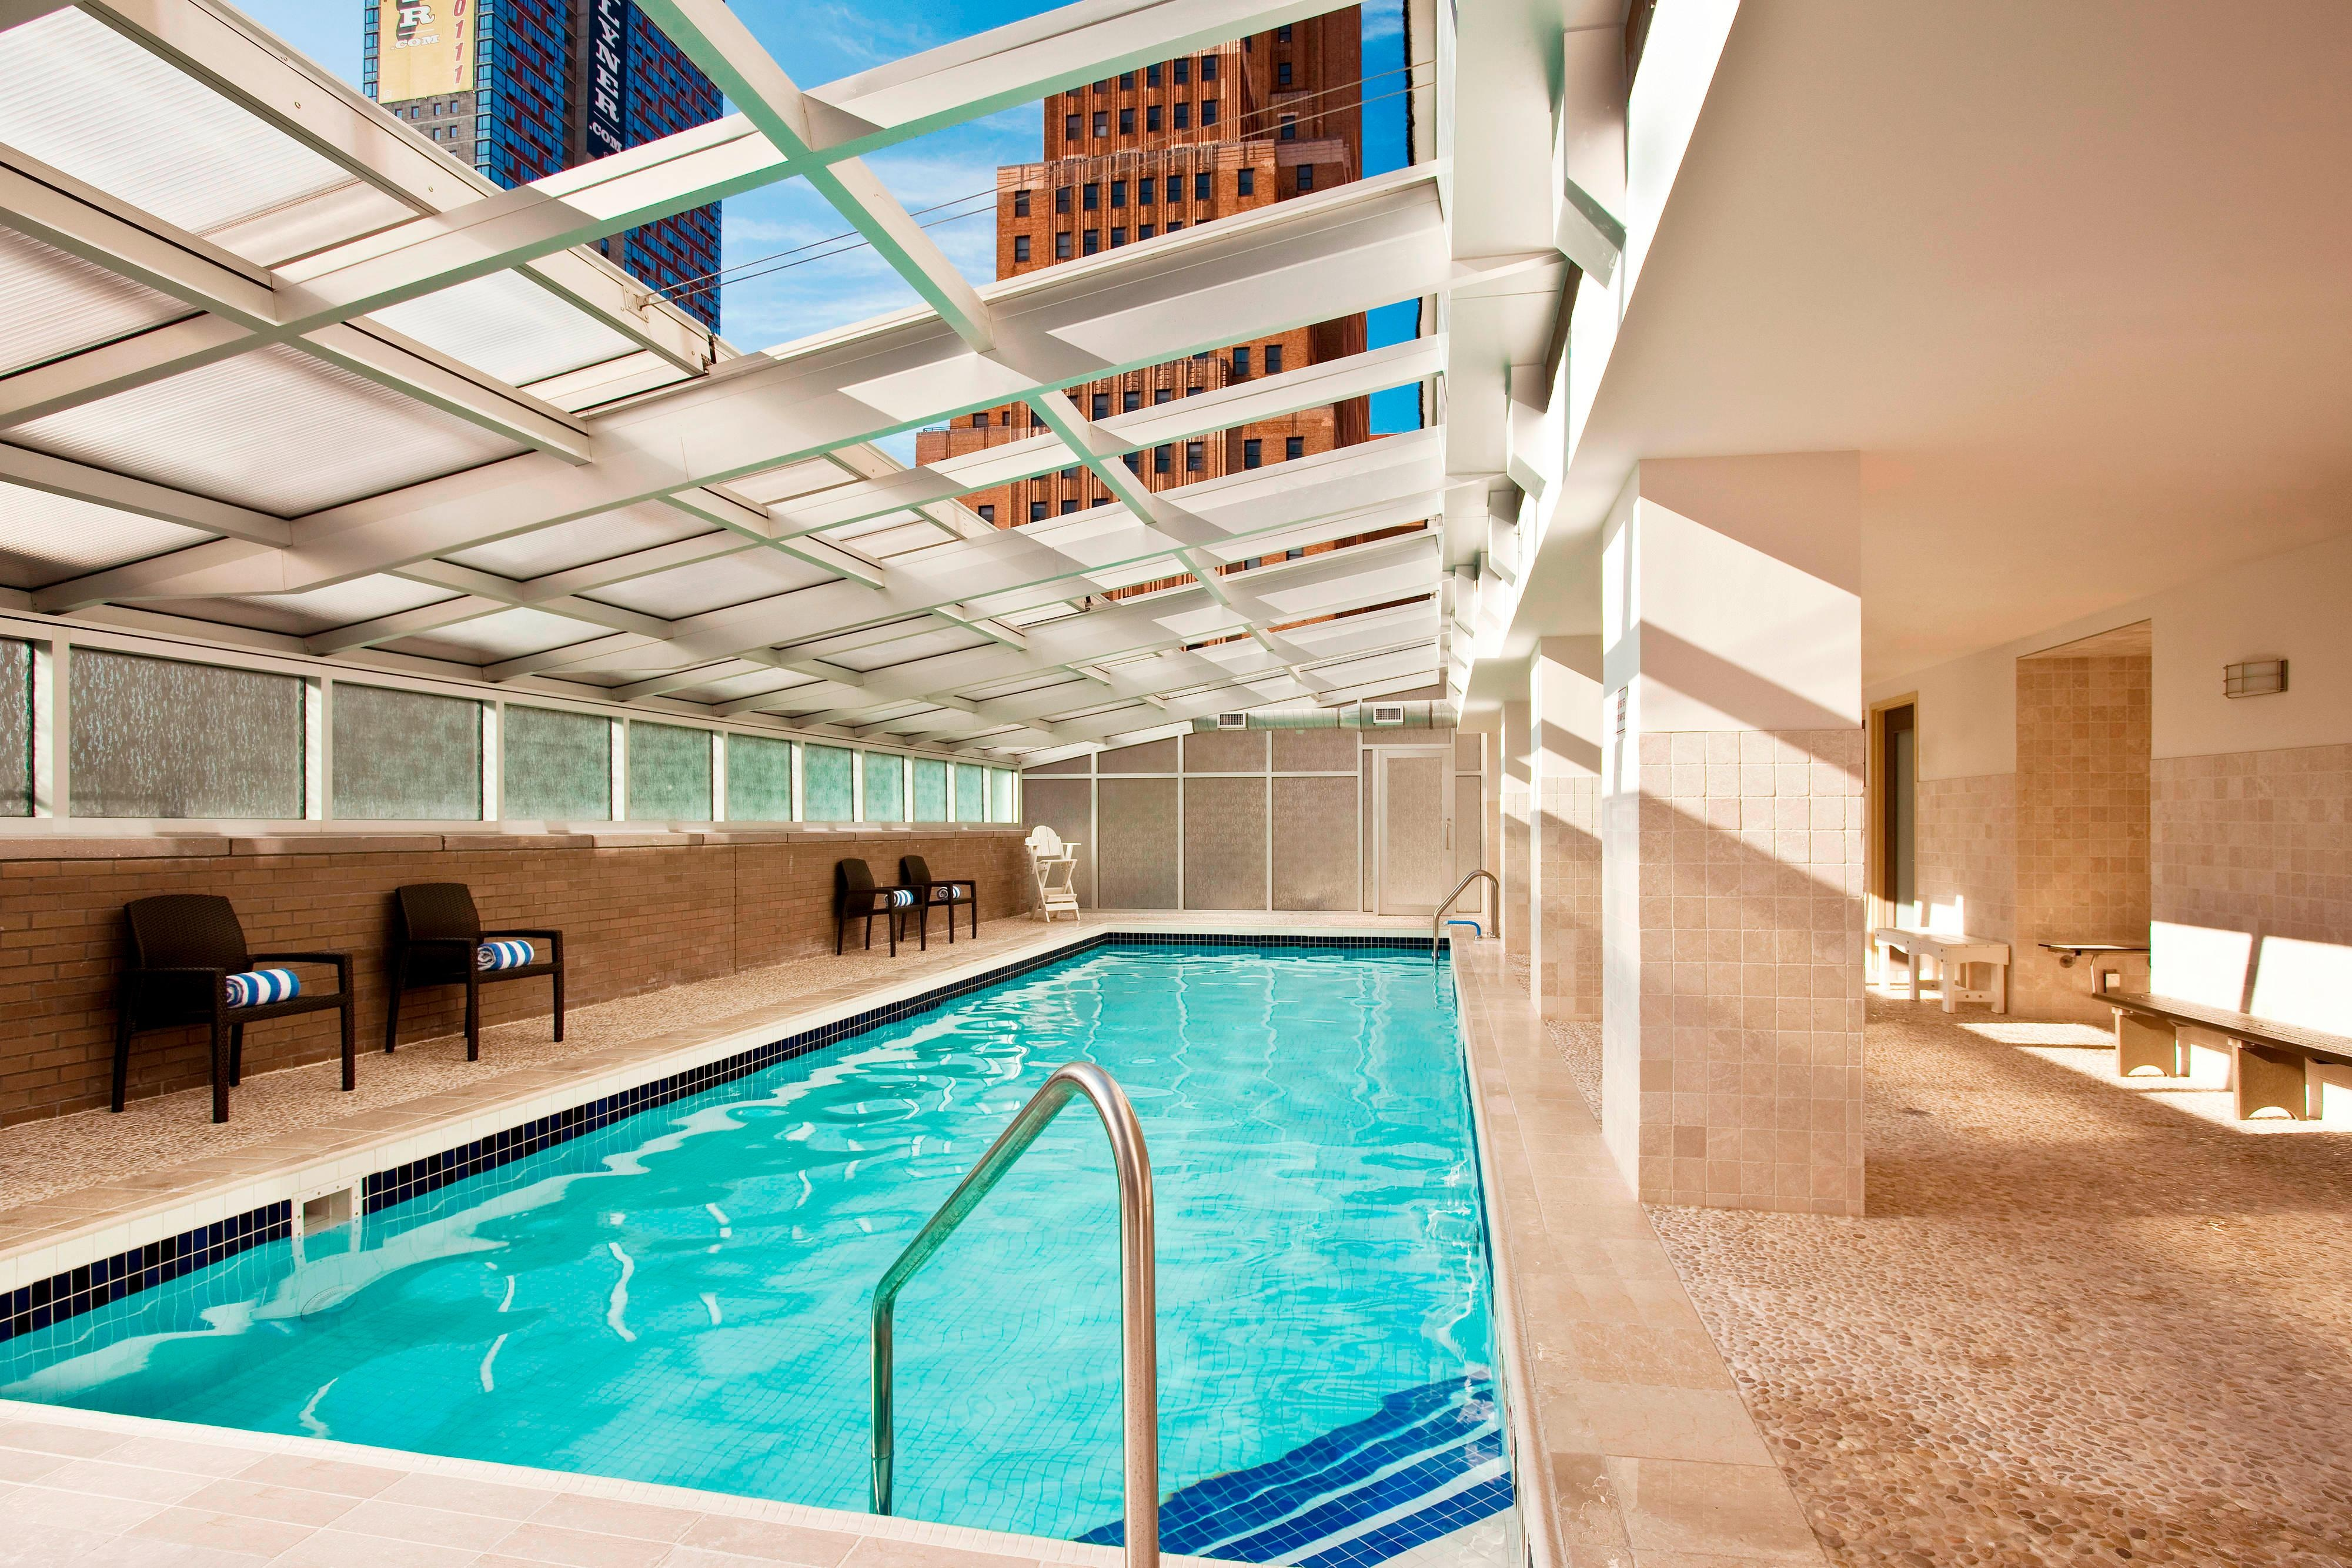 Pool with retracTable roof